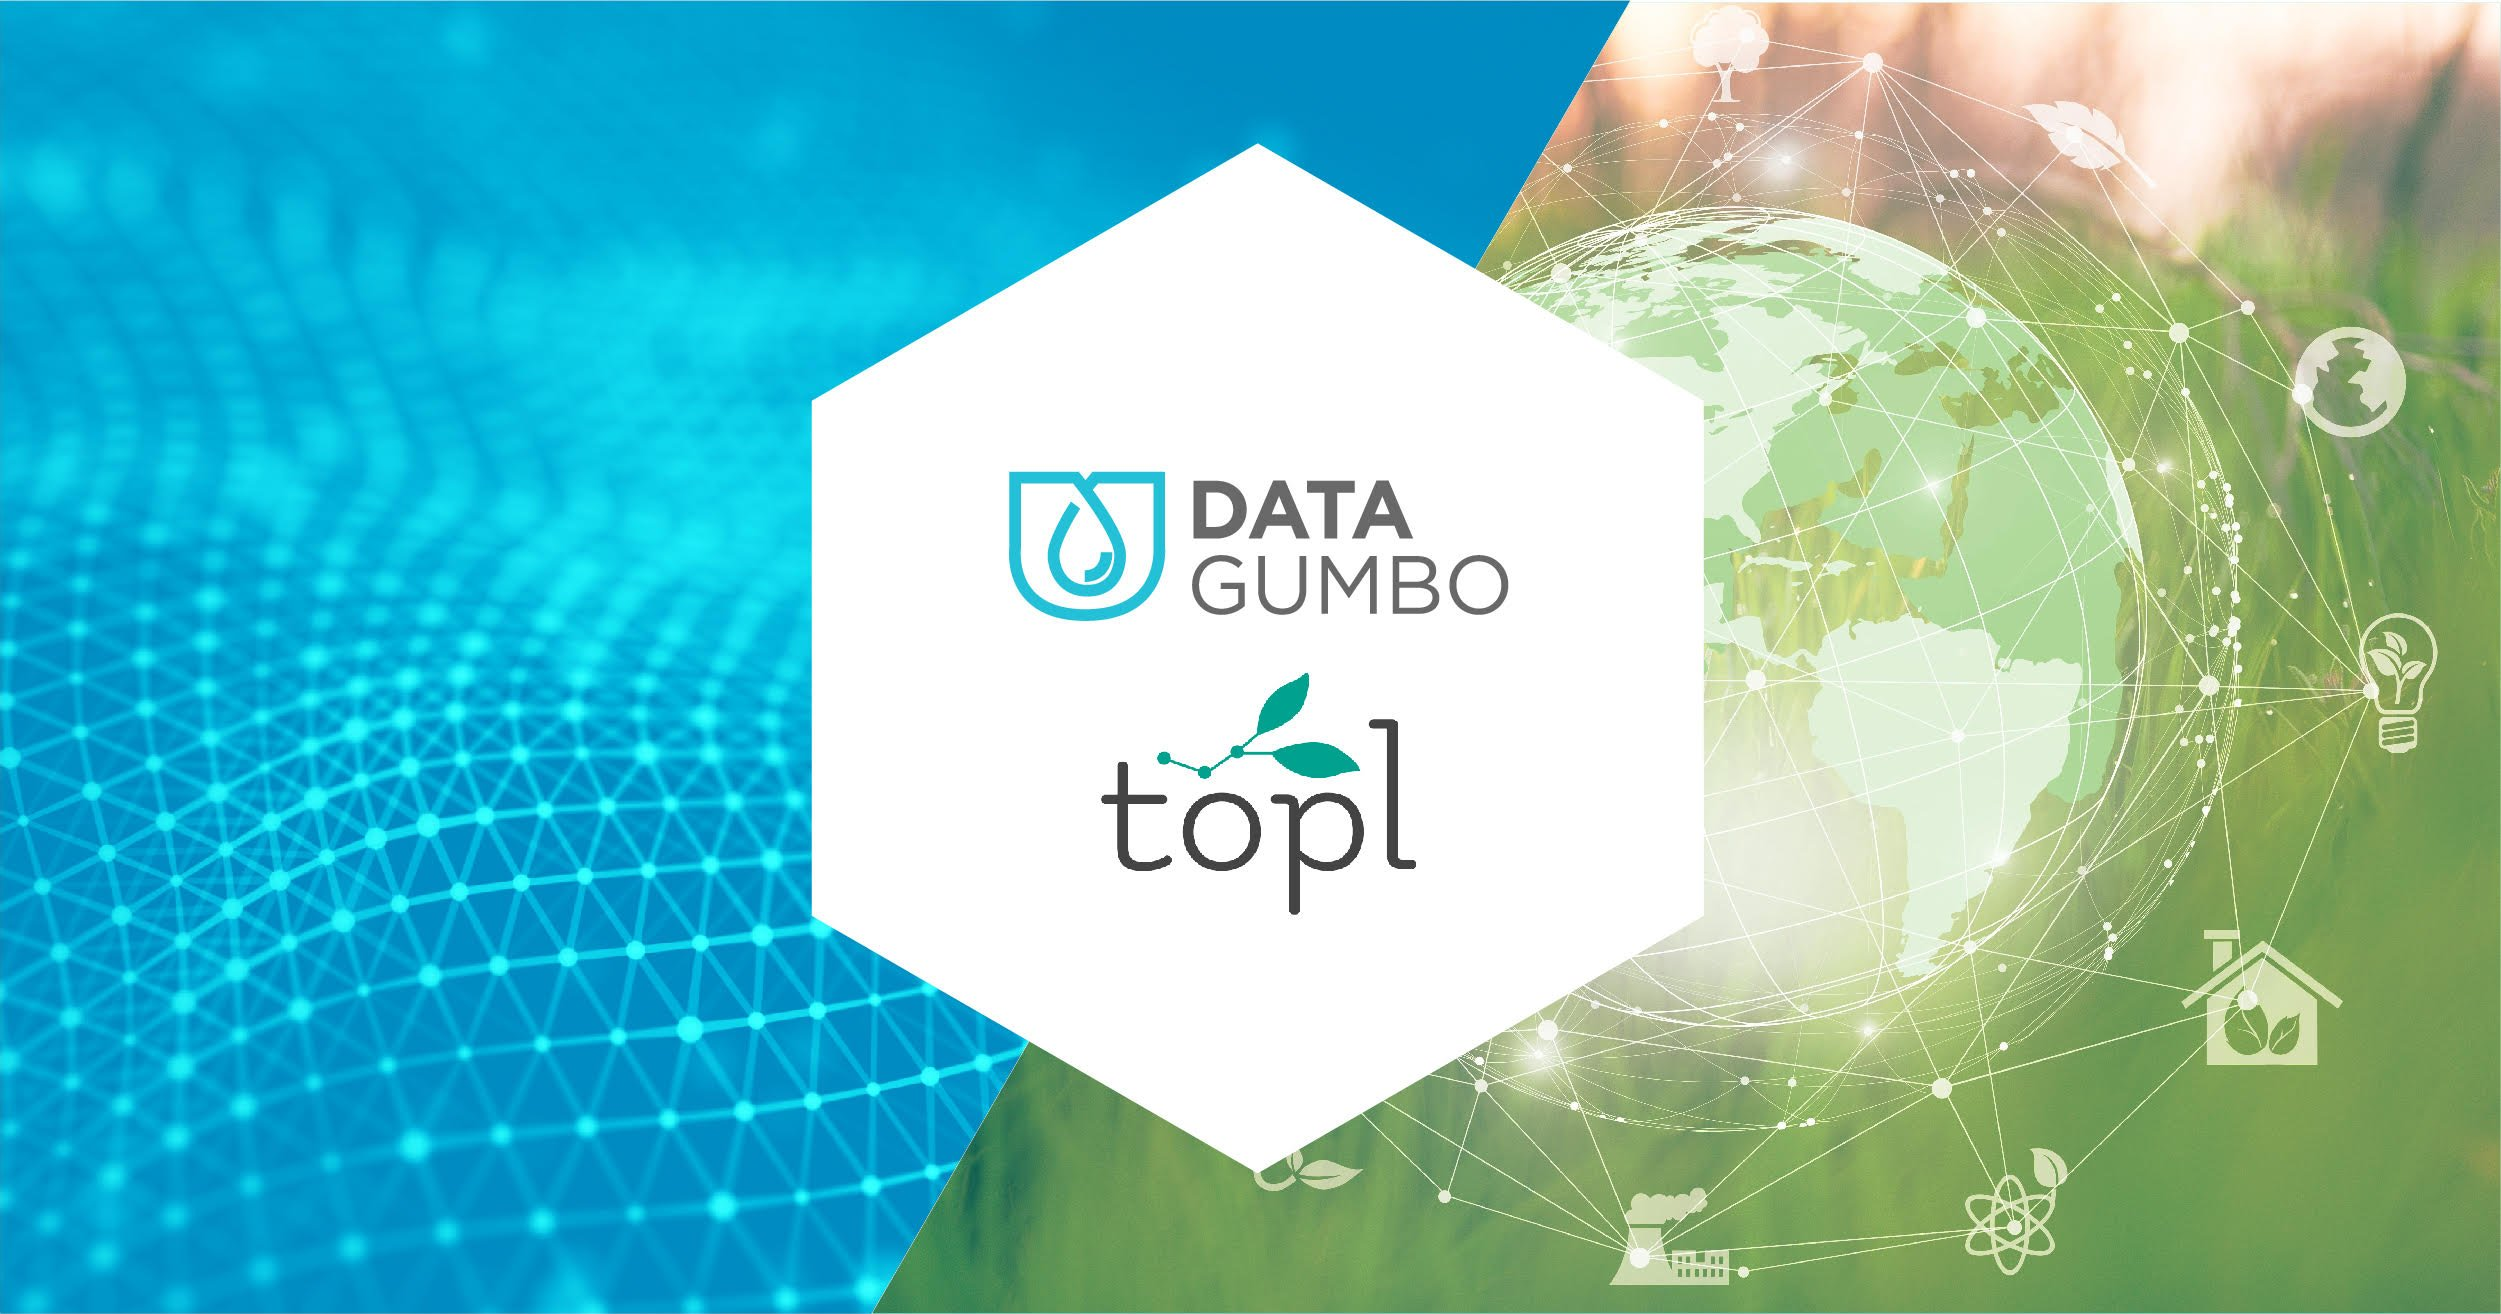 Data Gumbo and Topl Partner to Enable Evidence-Based, Transparent ESG Reporting